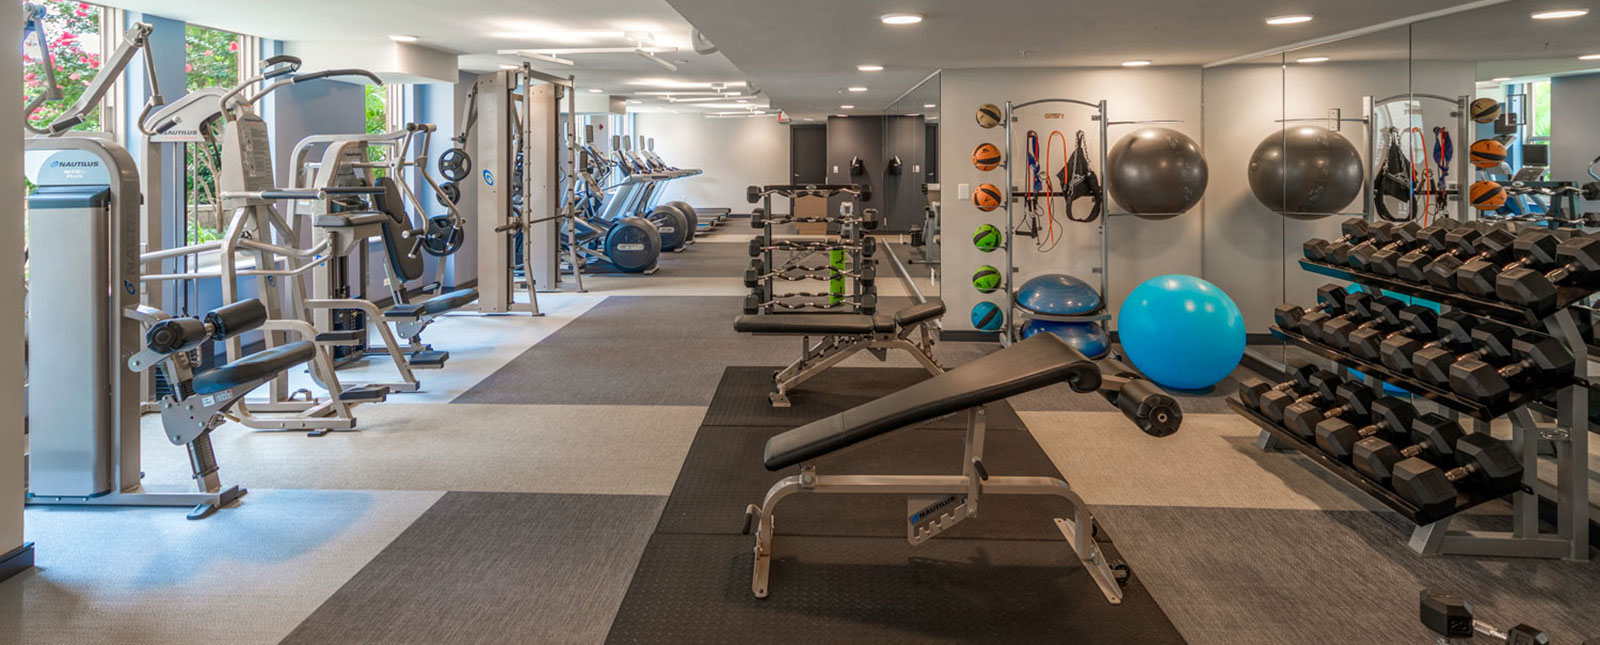 Gym area at Spinnaker Bay Serviced Apartments